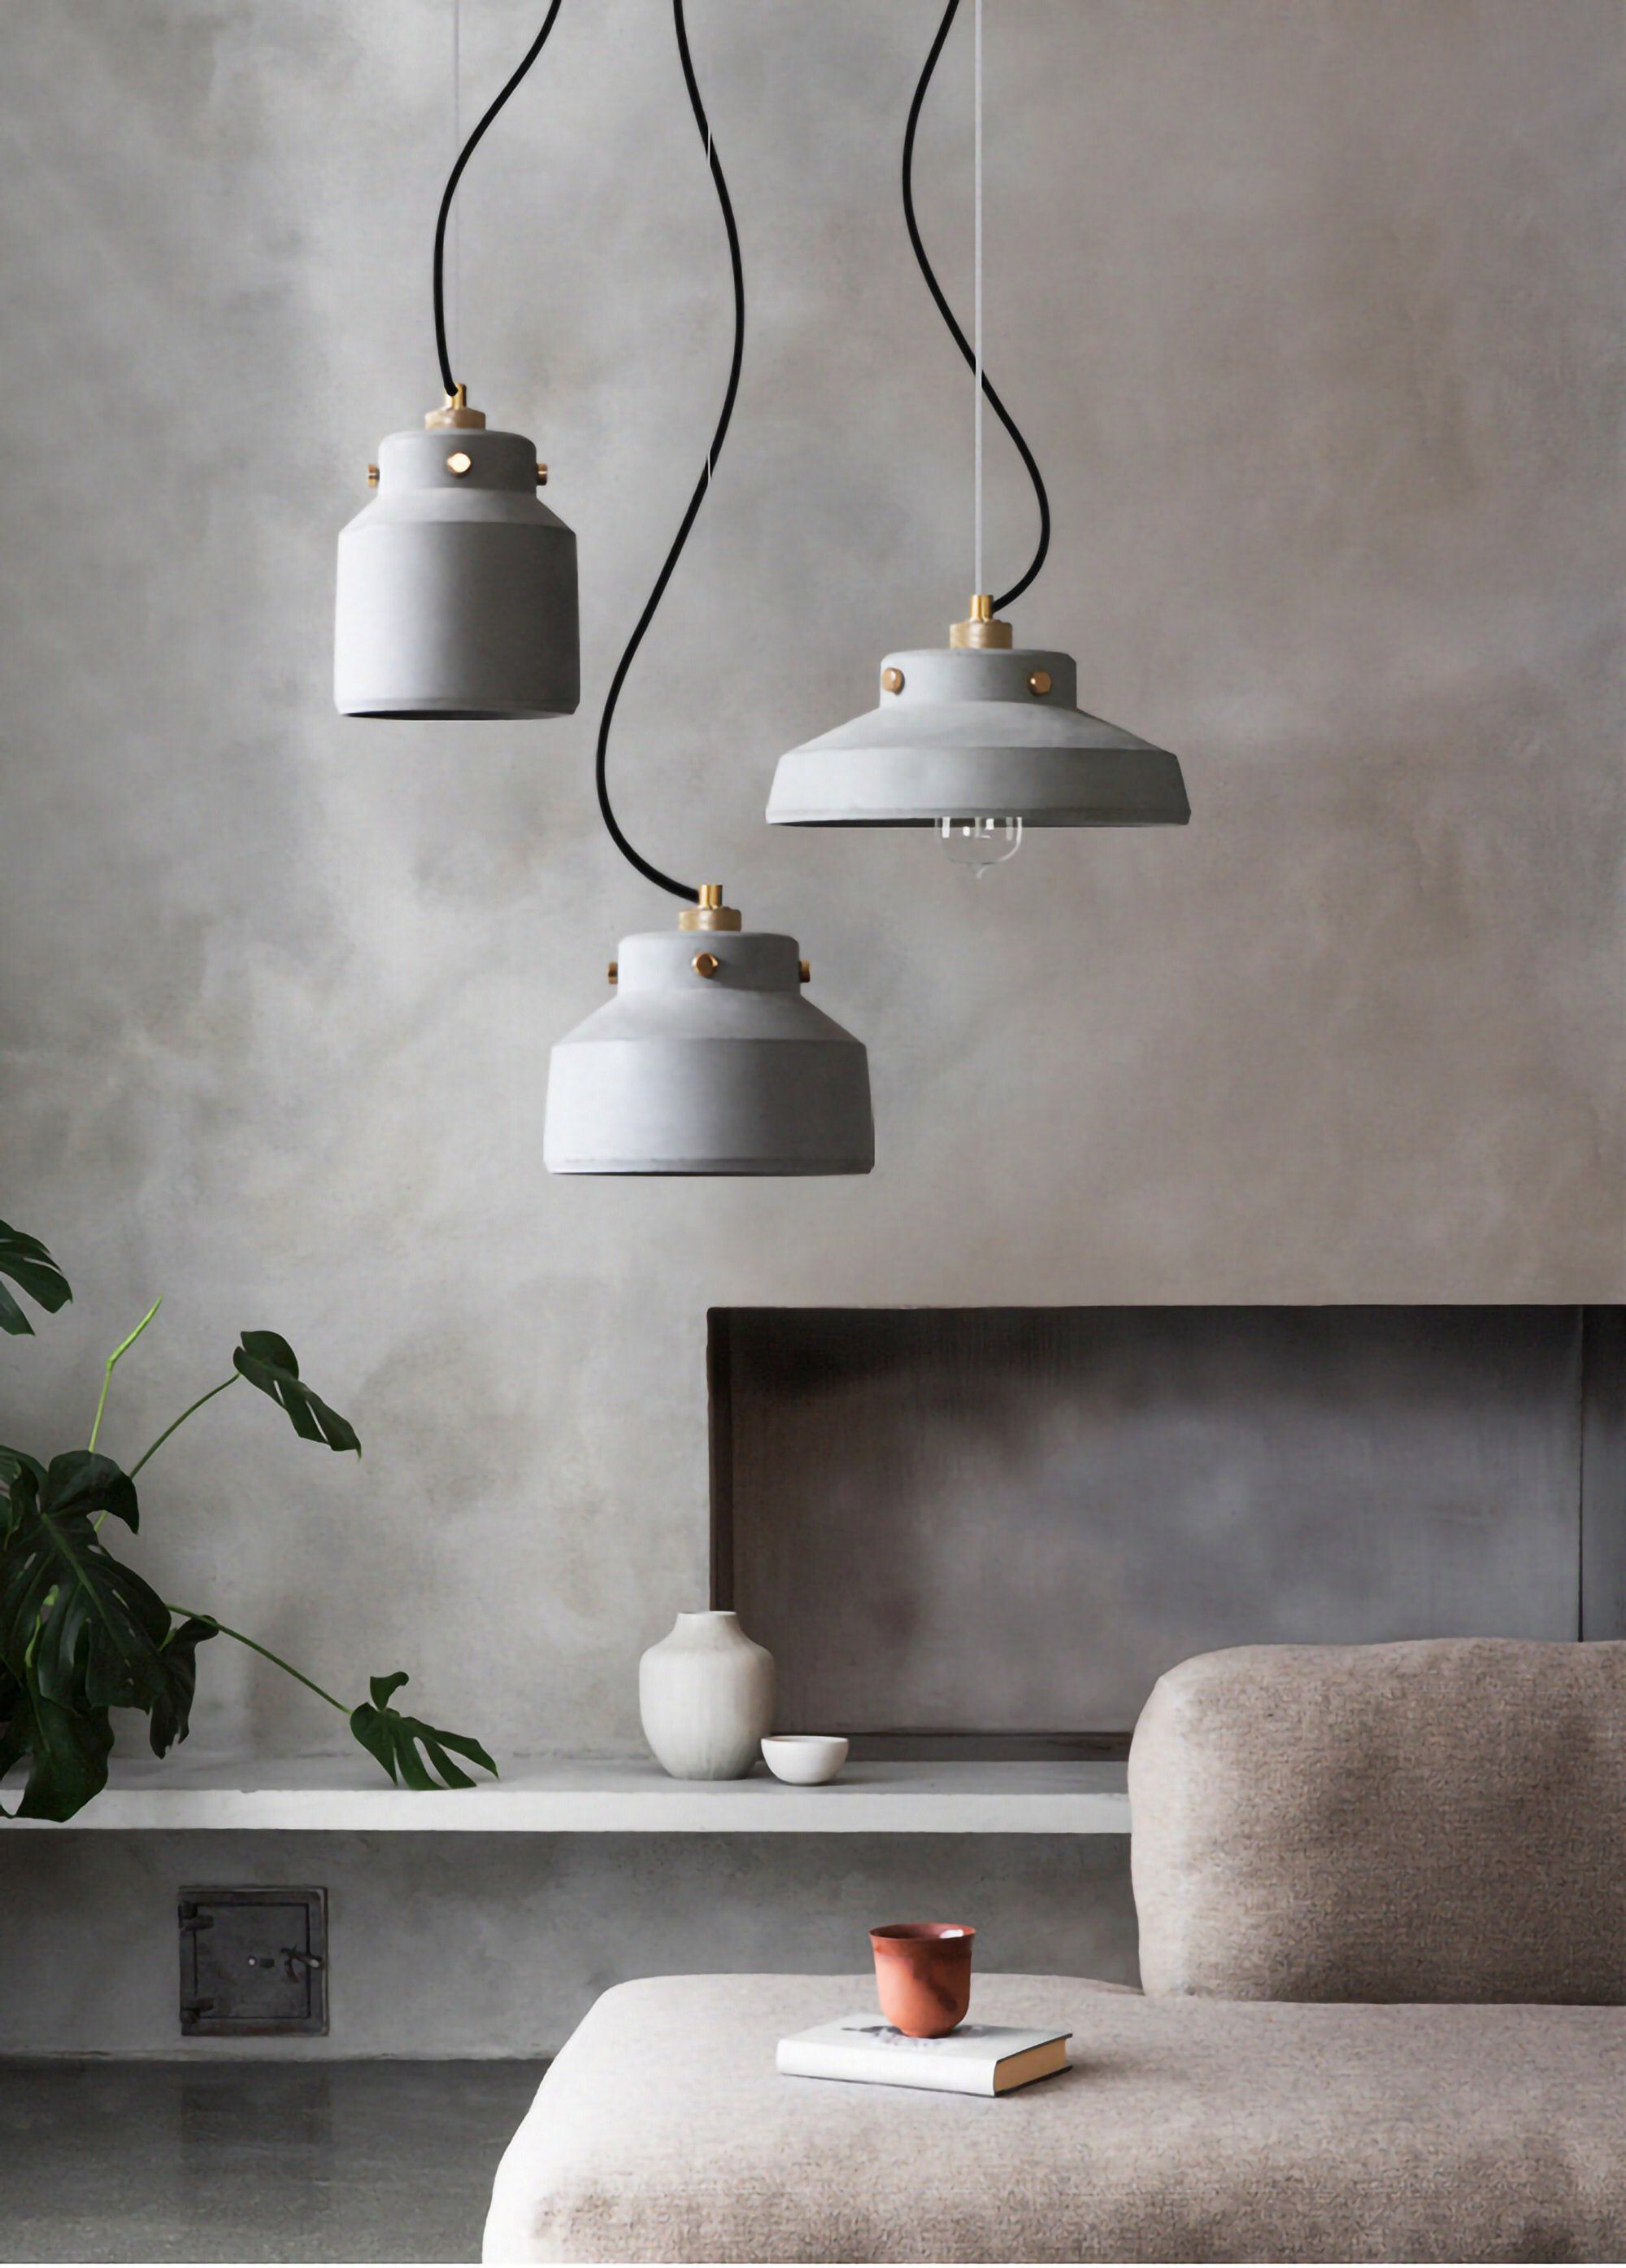 Excited to share the latest addition to my #etsy shop: Designer lamp American coffee shop lamp retro industrial style creative restaurant bar bedside cement small chandelier, Creative Cement #metal #pendantlight #modernlights #nordicpendantlight #diningroomlights #bedroomlights #globependantlight #hangingmodernlamp #cement